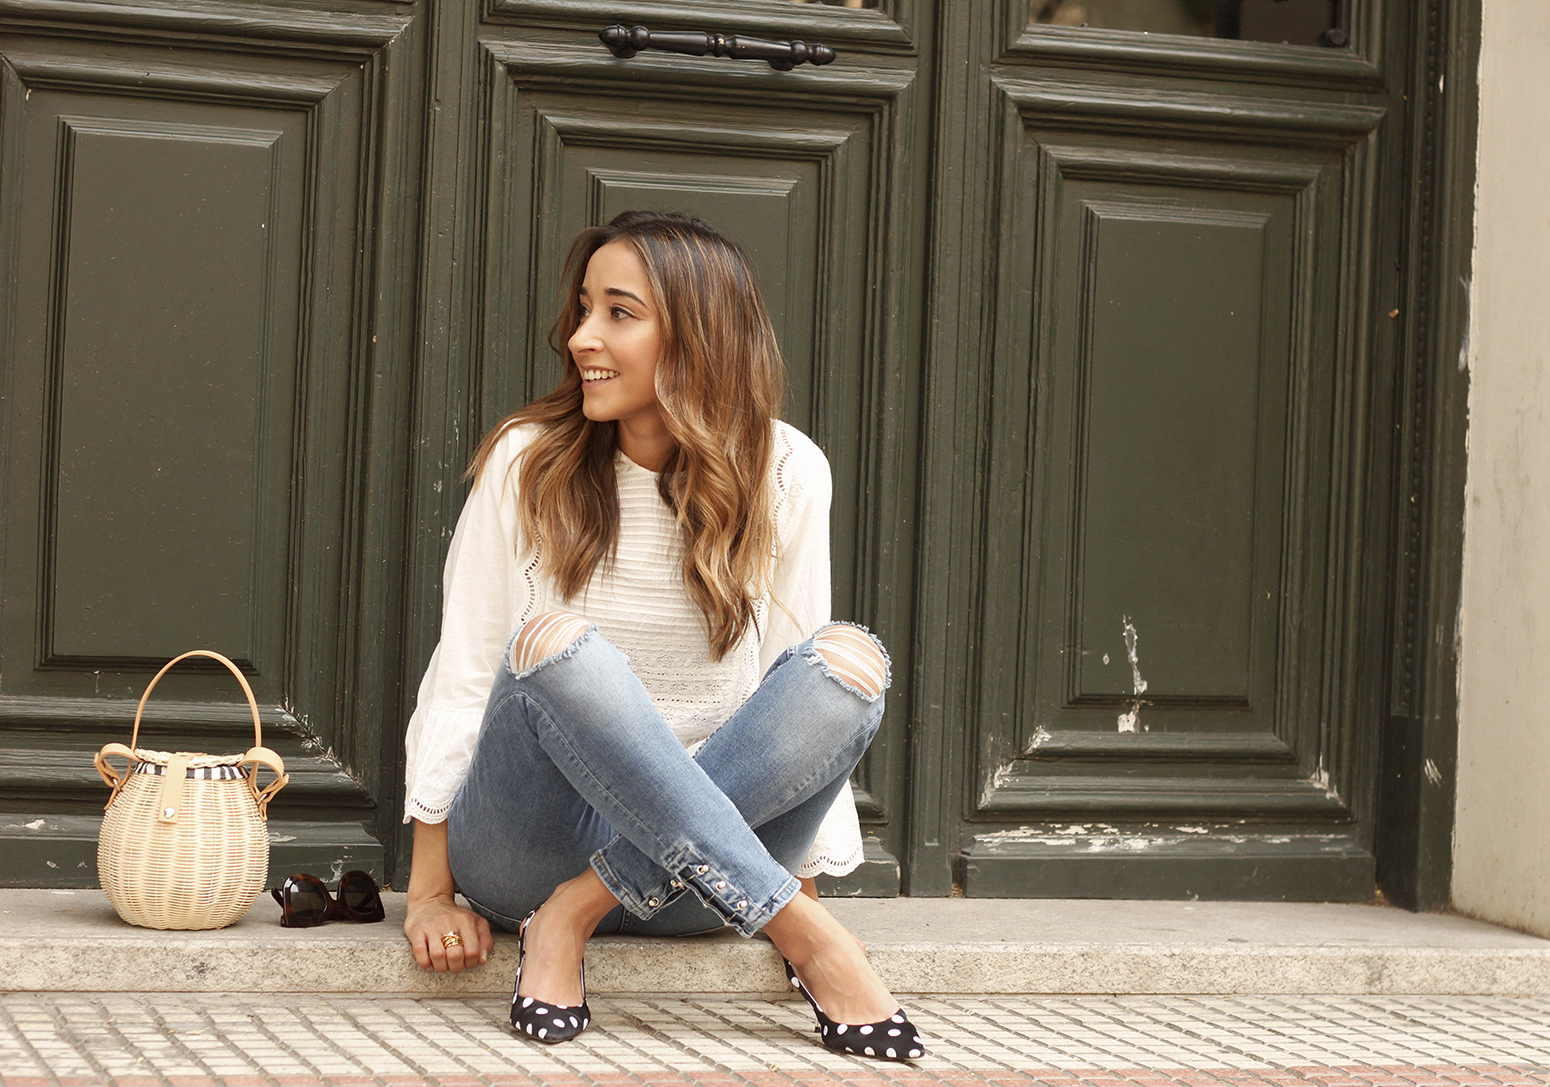 polka dot kitten heels white blouse ripped jeans outfit girl style fashion11